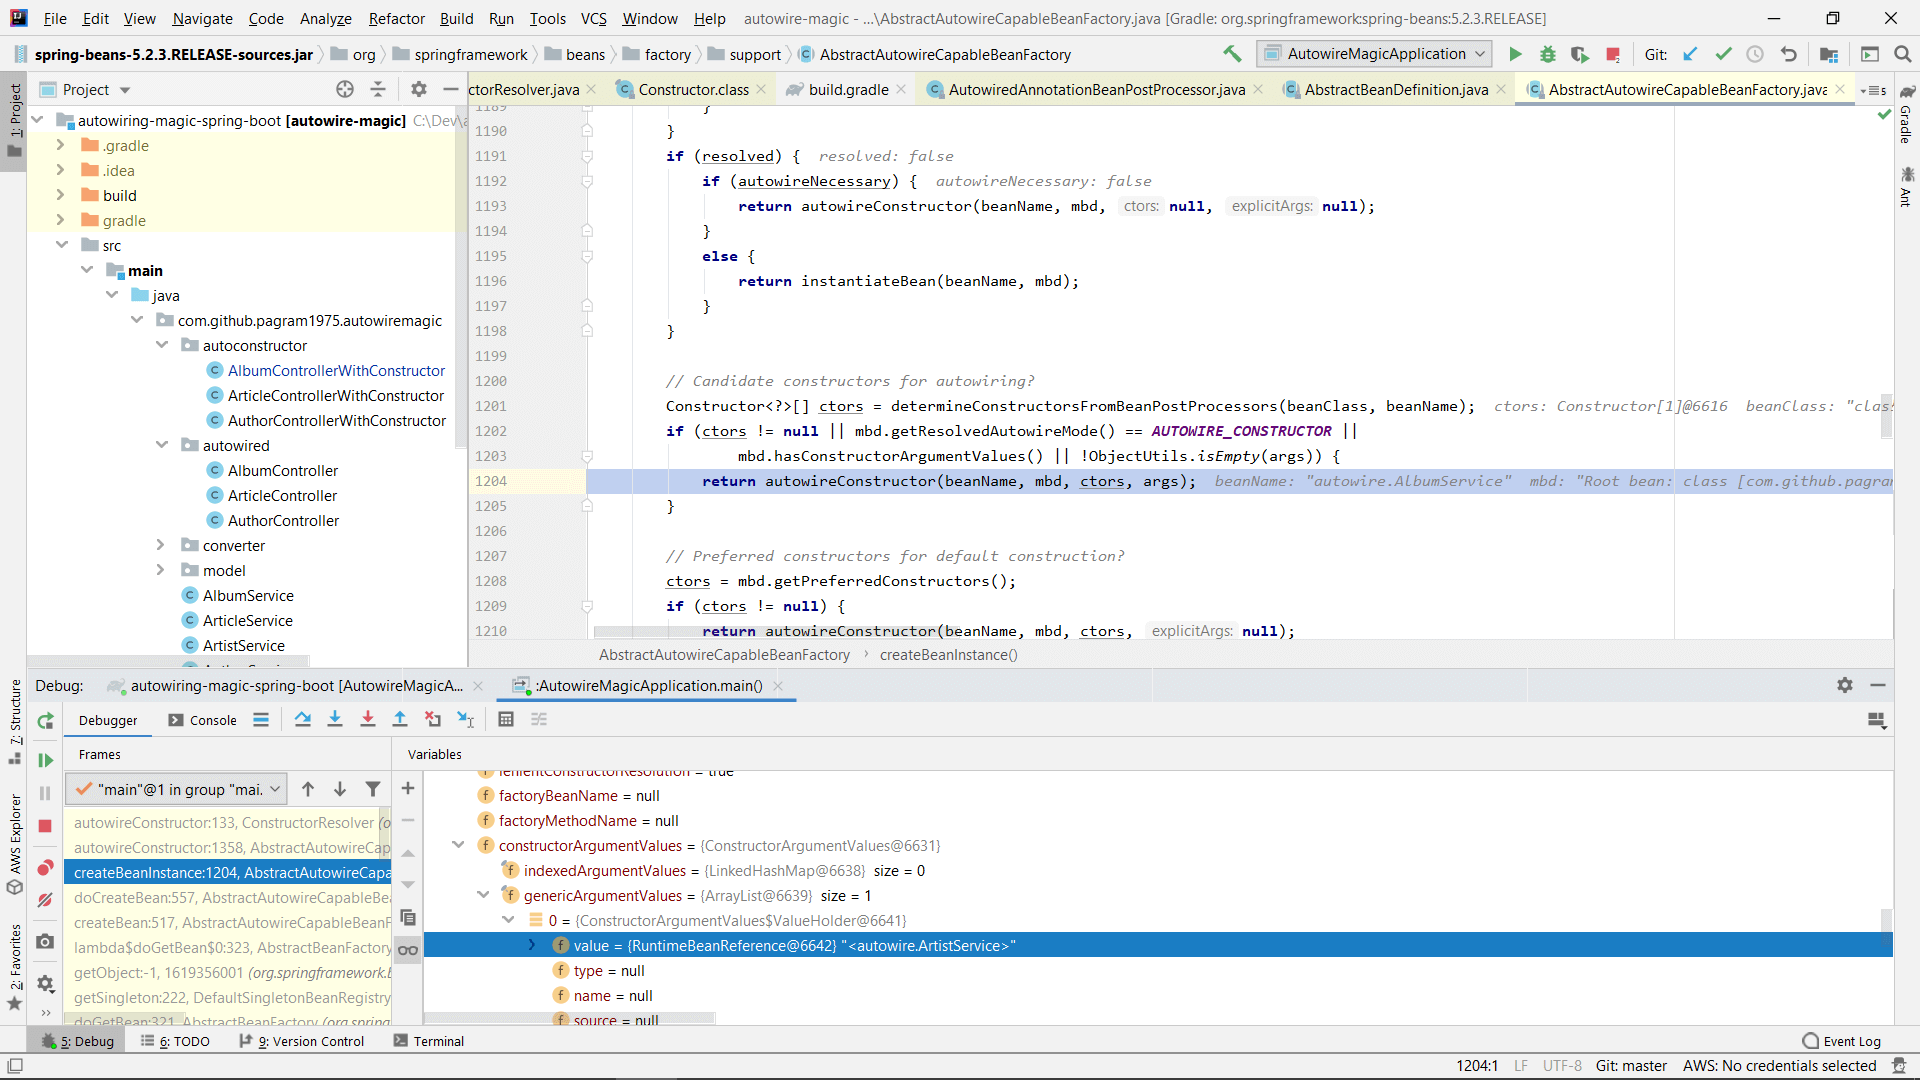 Debugging Spring in IntelliJ Idea to see the configuration data held in the RootBeanDefinition